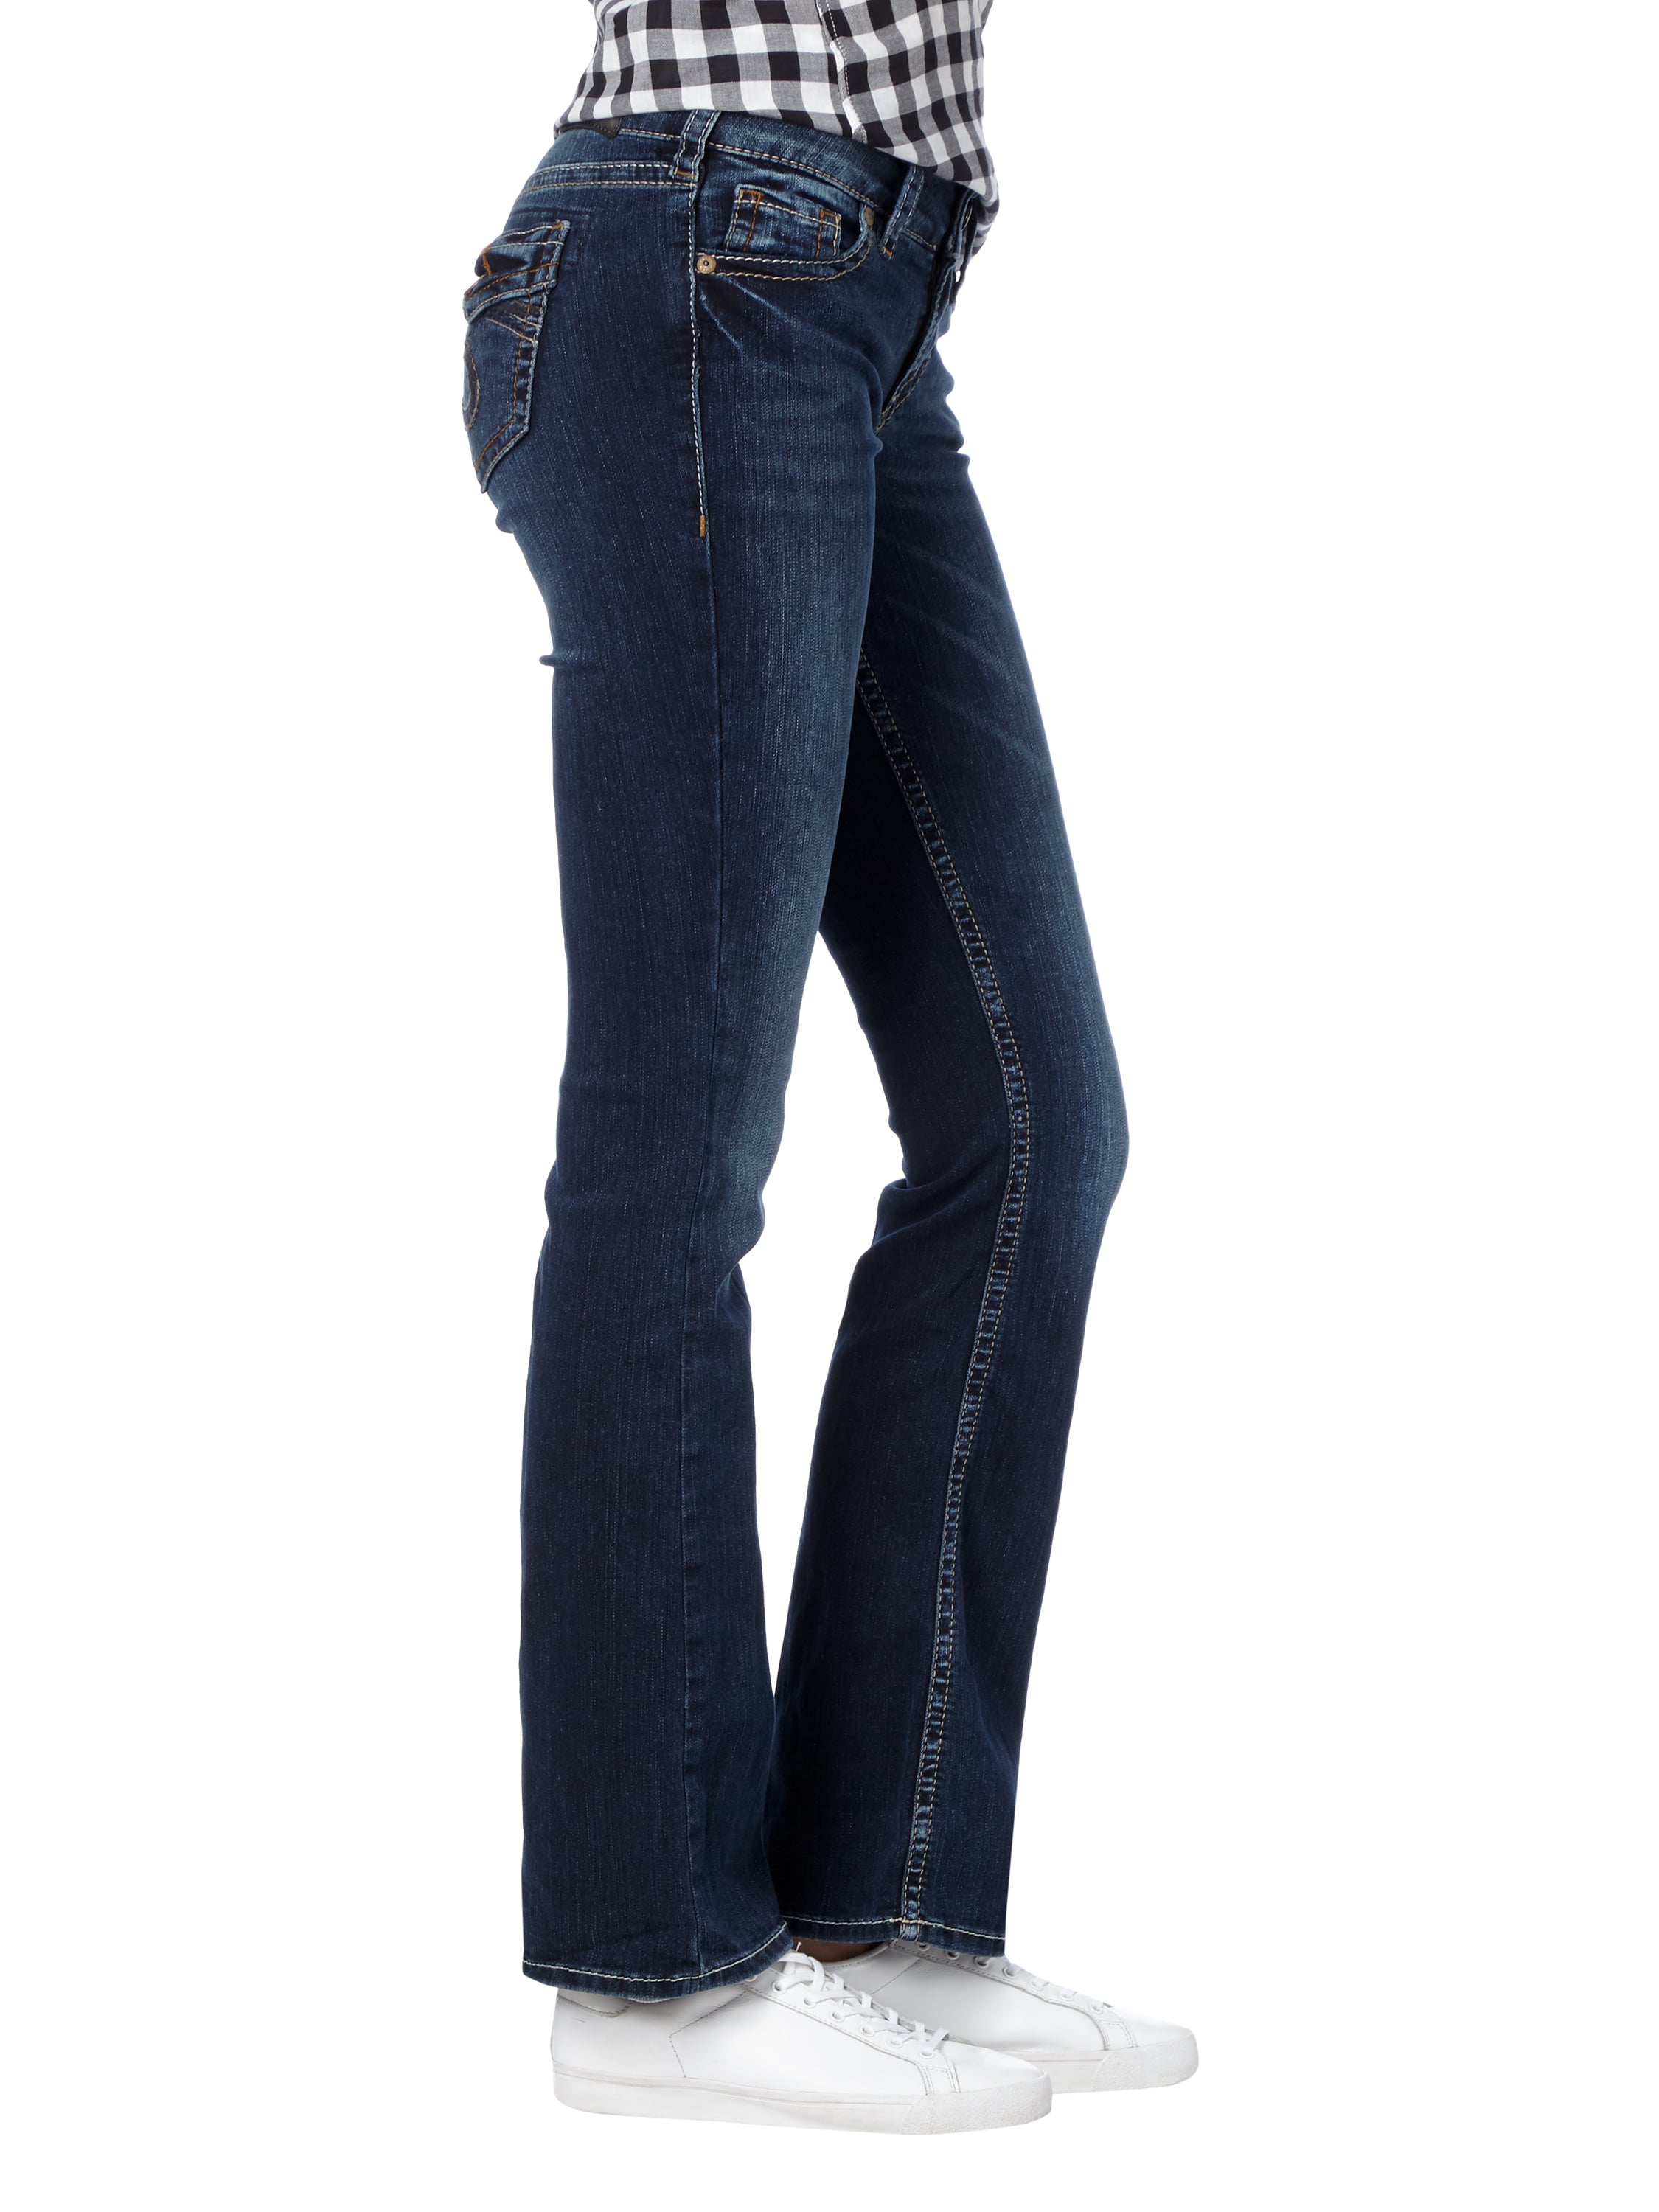 silver jeans stone washed boot cut 5 pocket jeans in blau t rkis online kaufen 9496386 p c. Black Bedroom Furniture Sets. Home Design Ideas